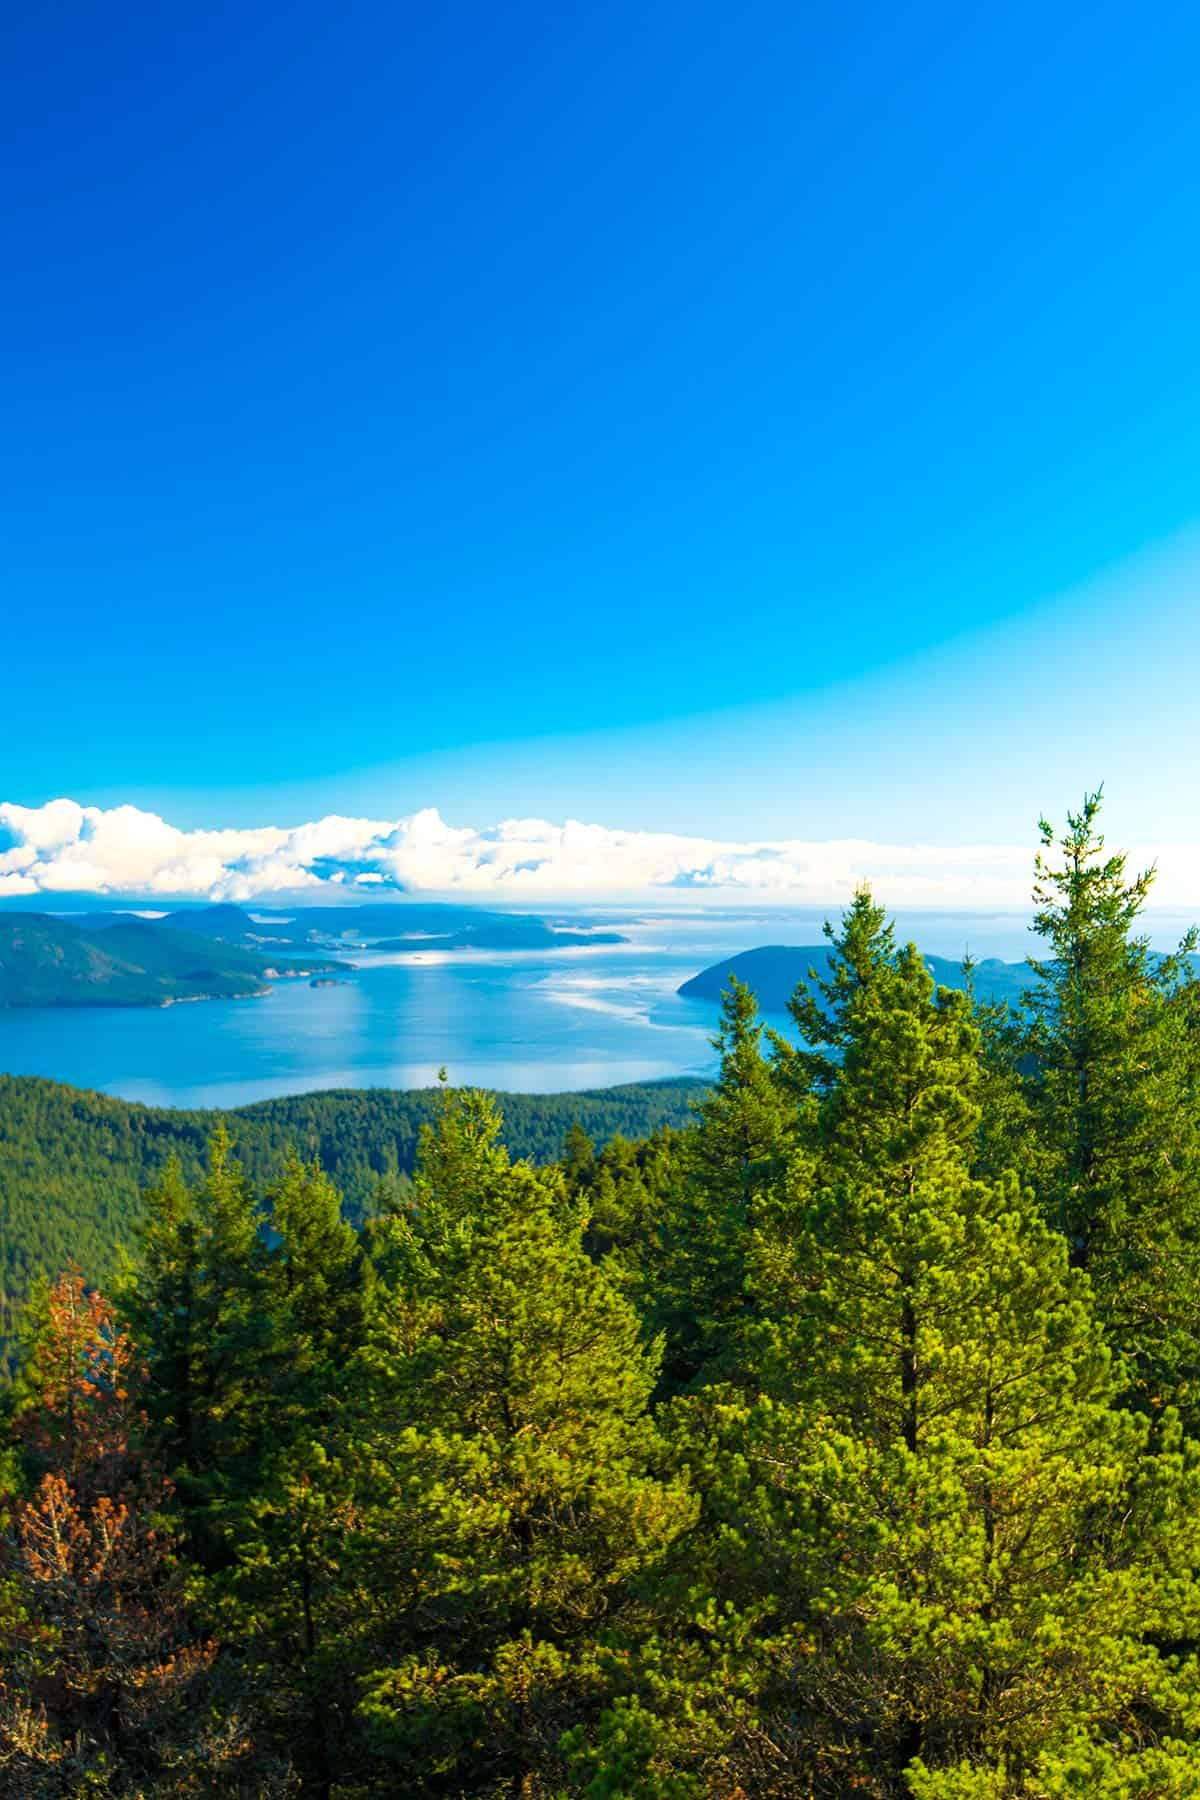 Gorgeous views of the San Juan Islands, Washington from Mt. Constitution